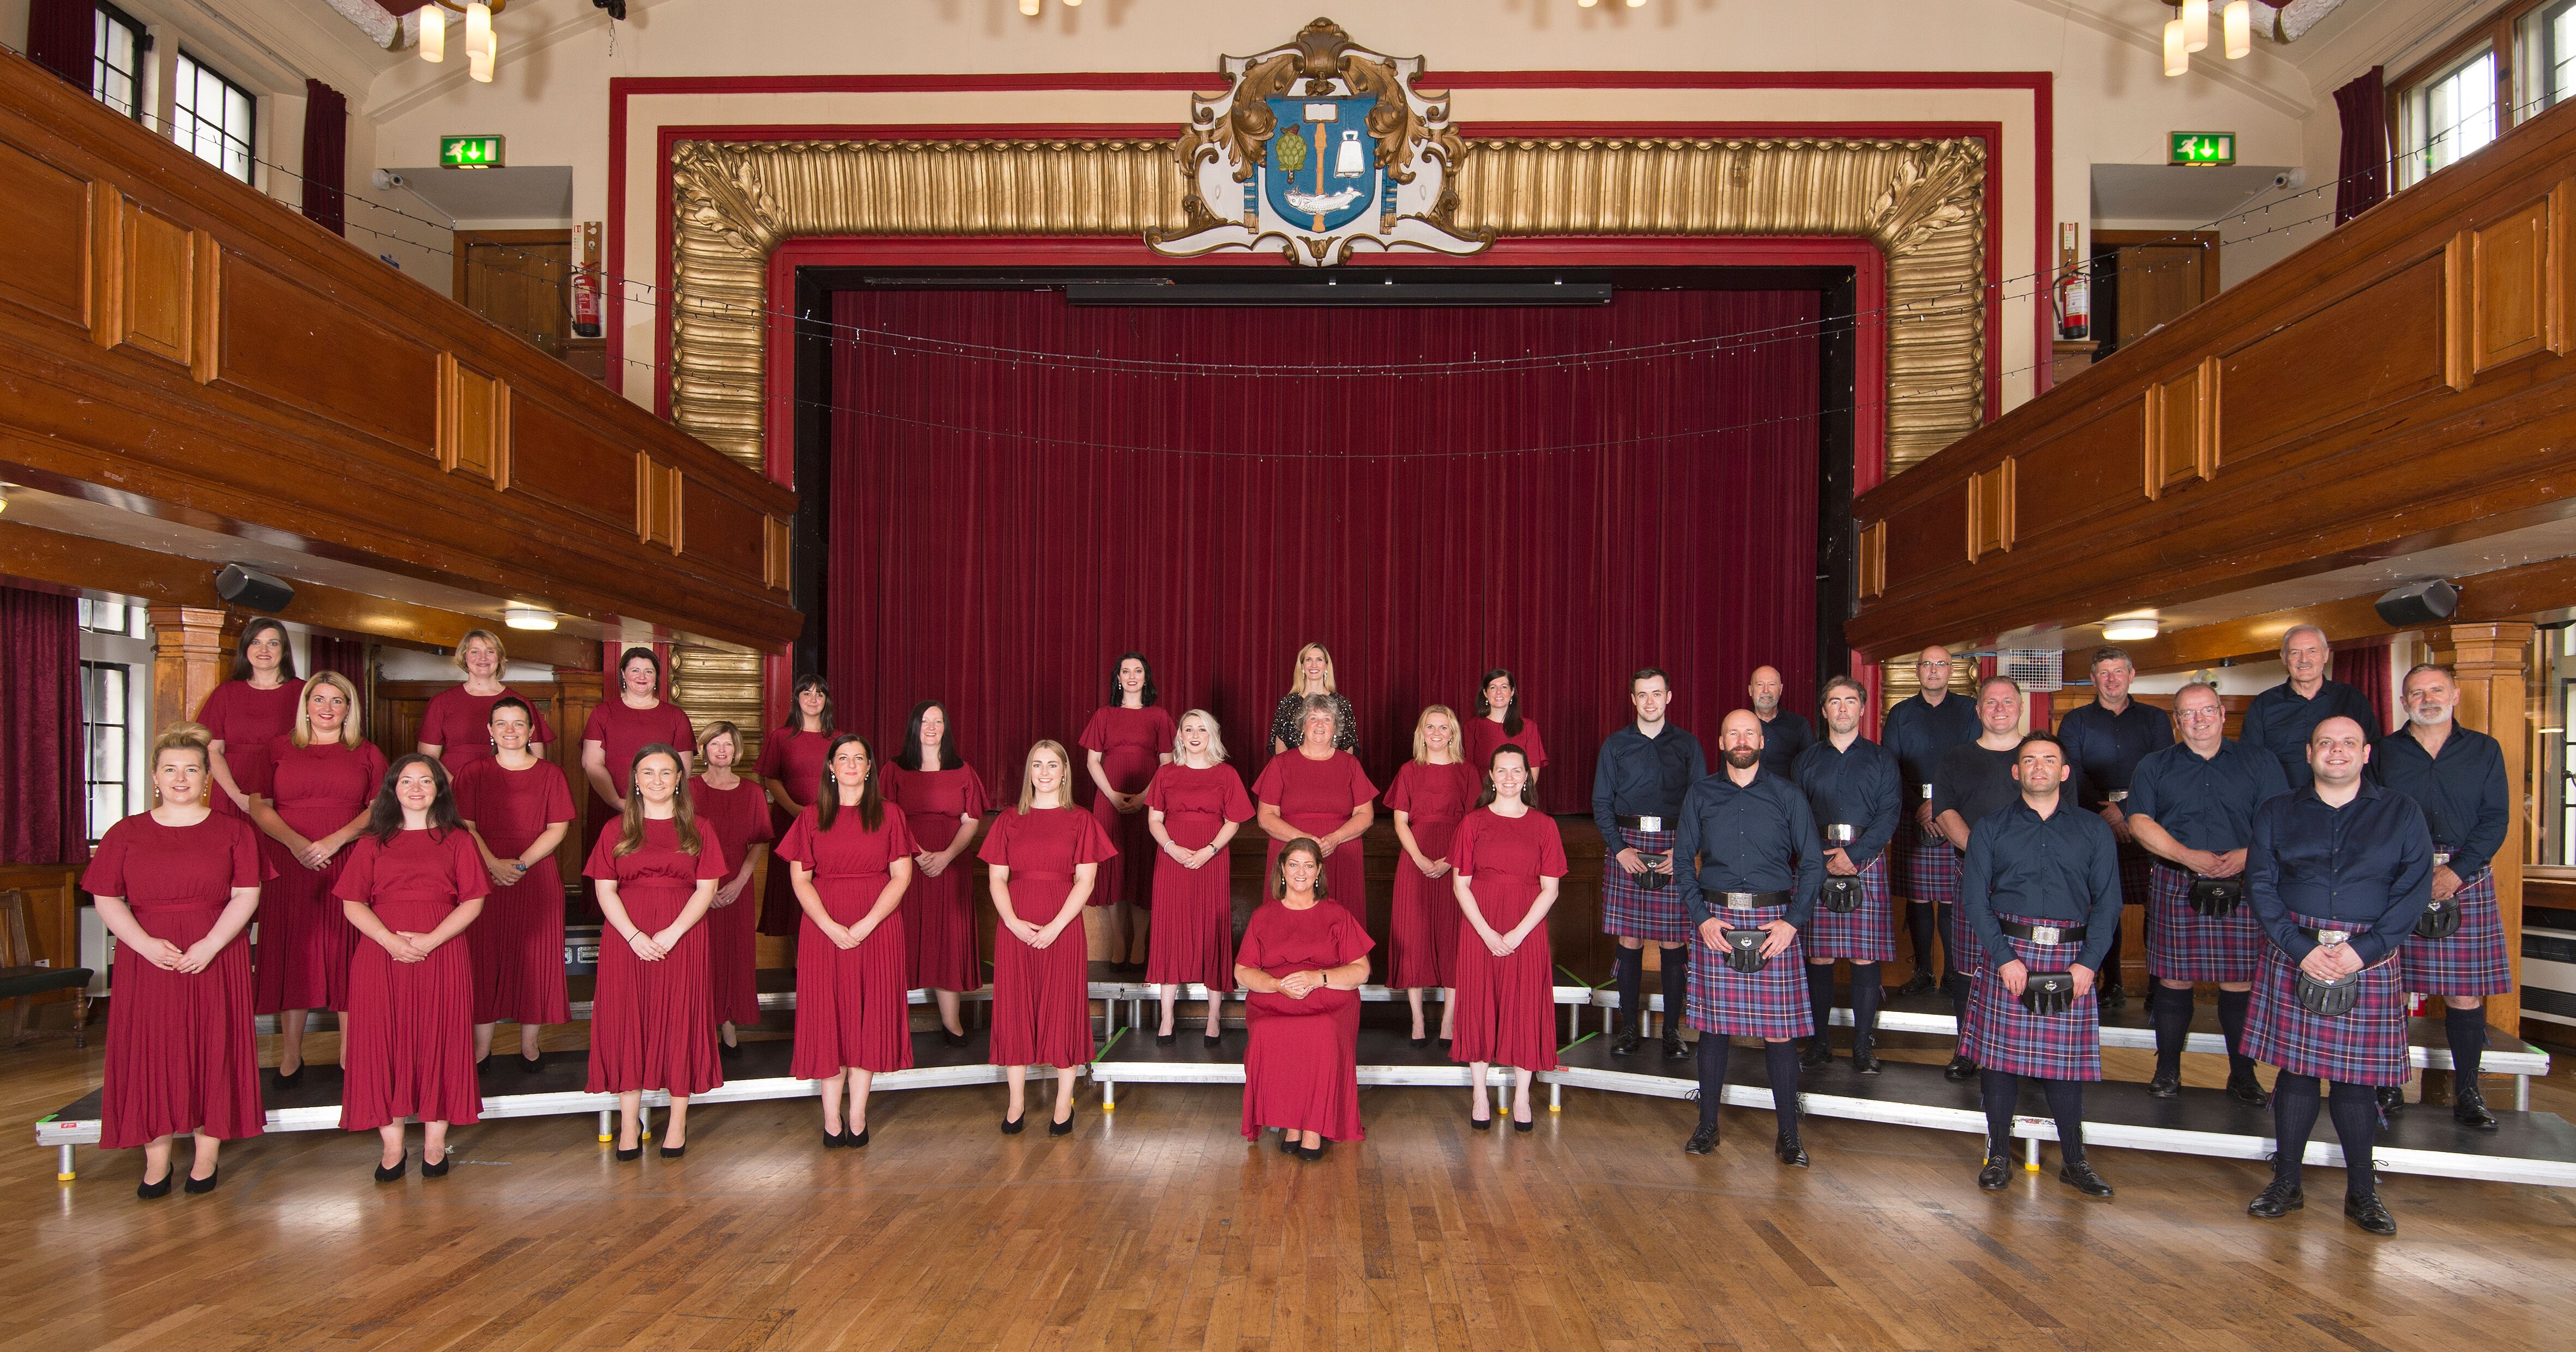 The 33-strong Choir Alba will take to the stage in Sweden on Saturday to compete for the prestigious title.